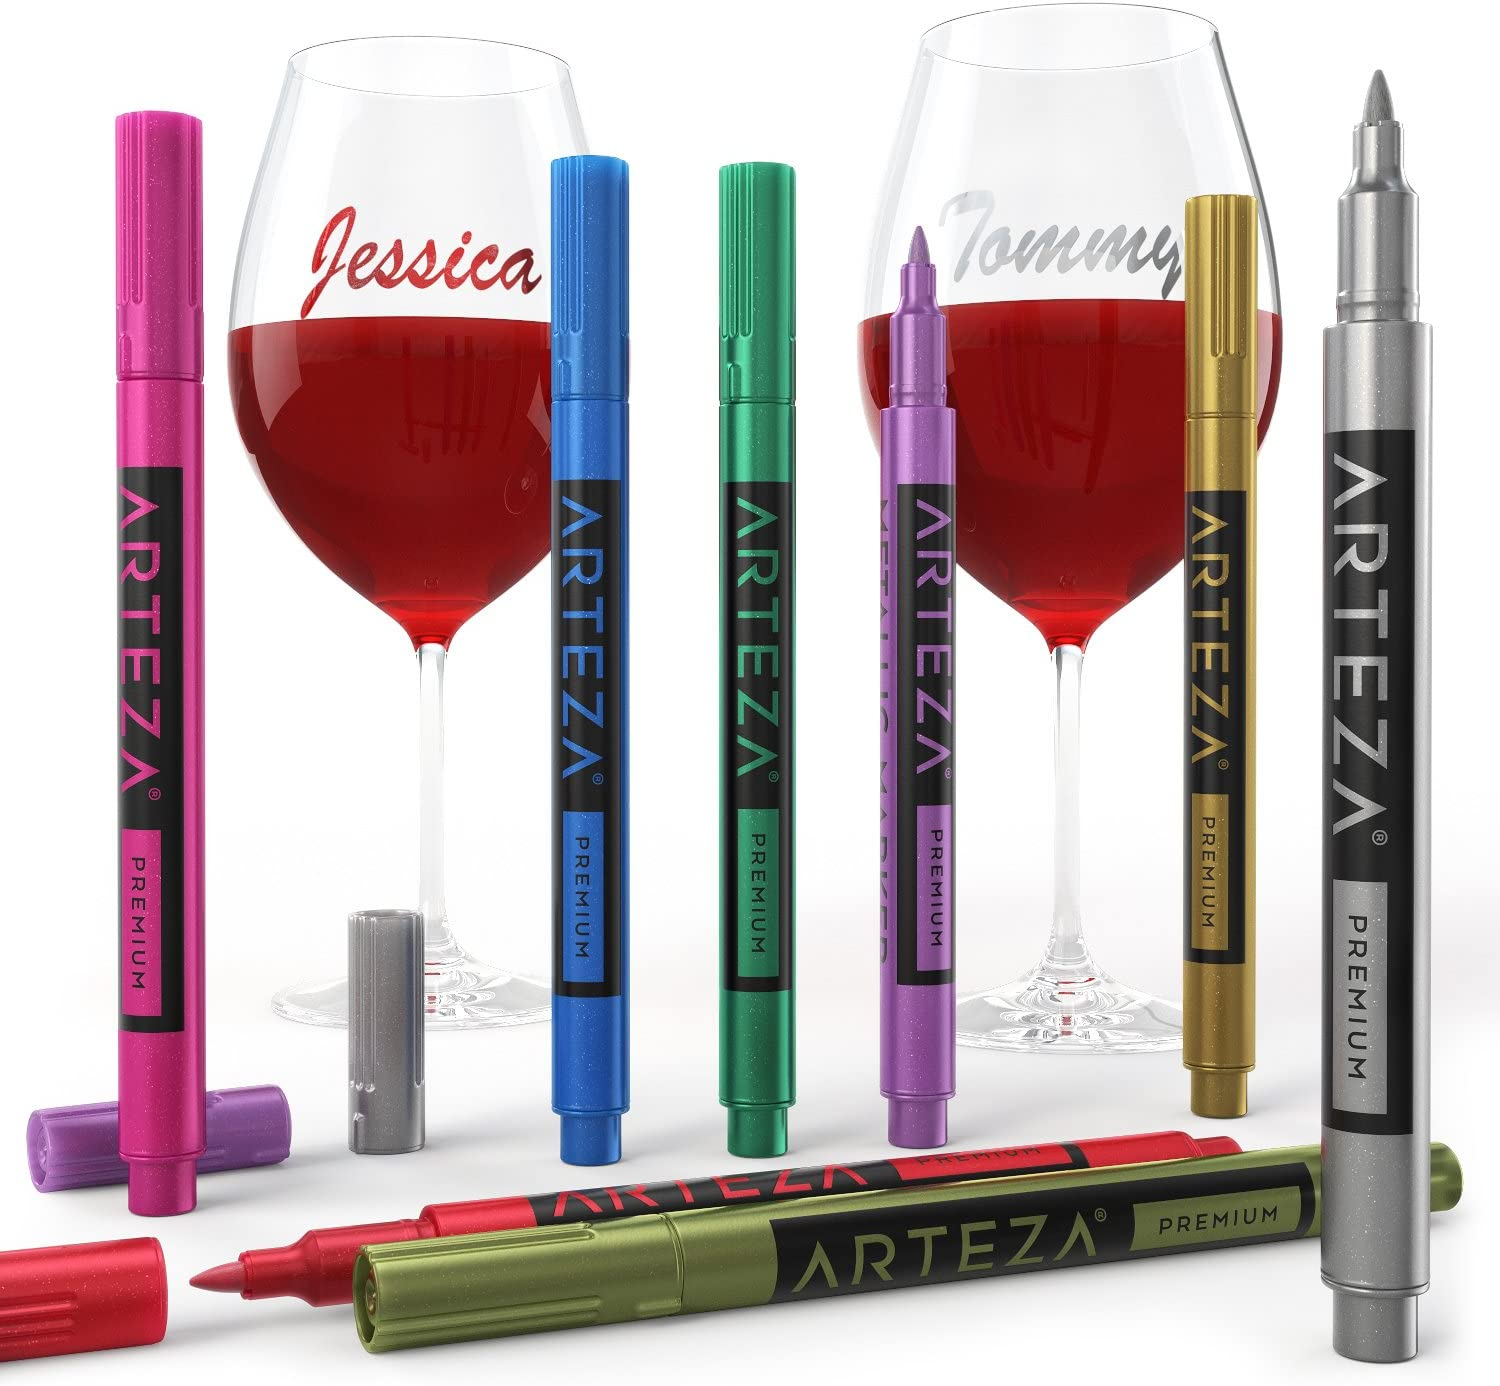 Markers and wine glasses labeled with names.